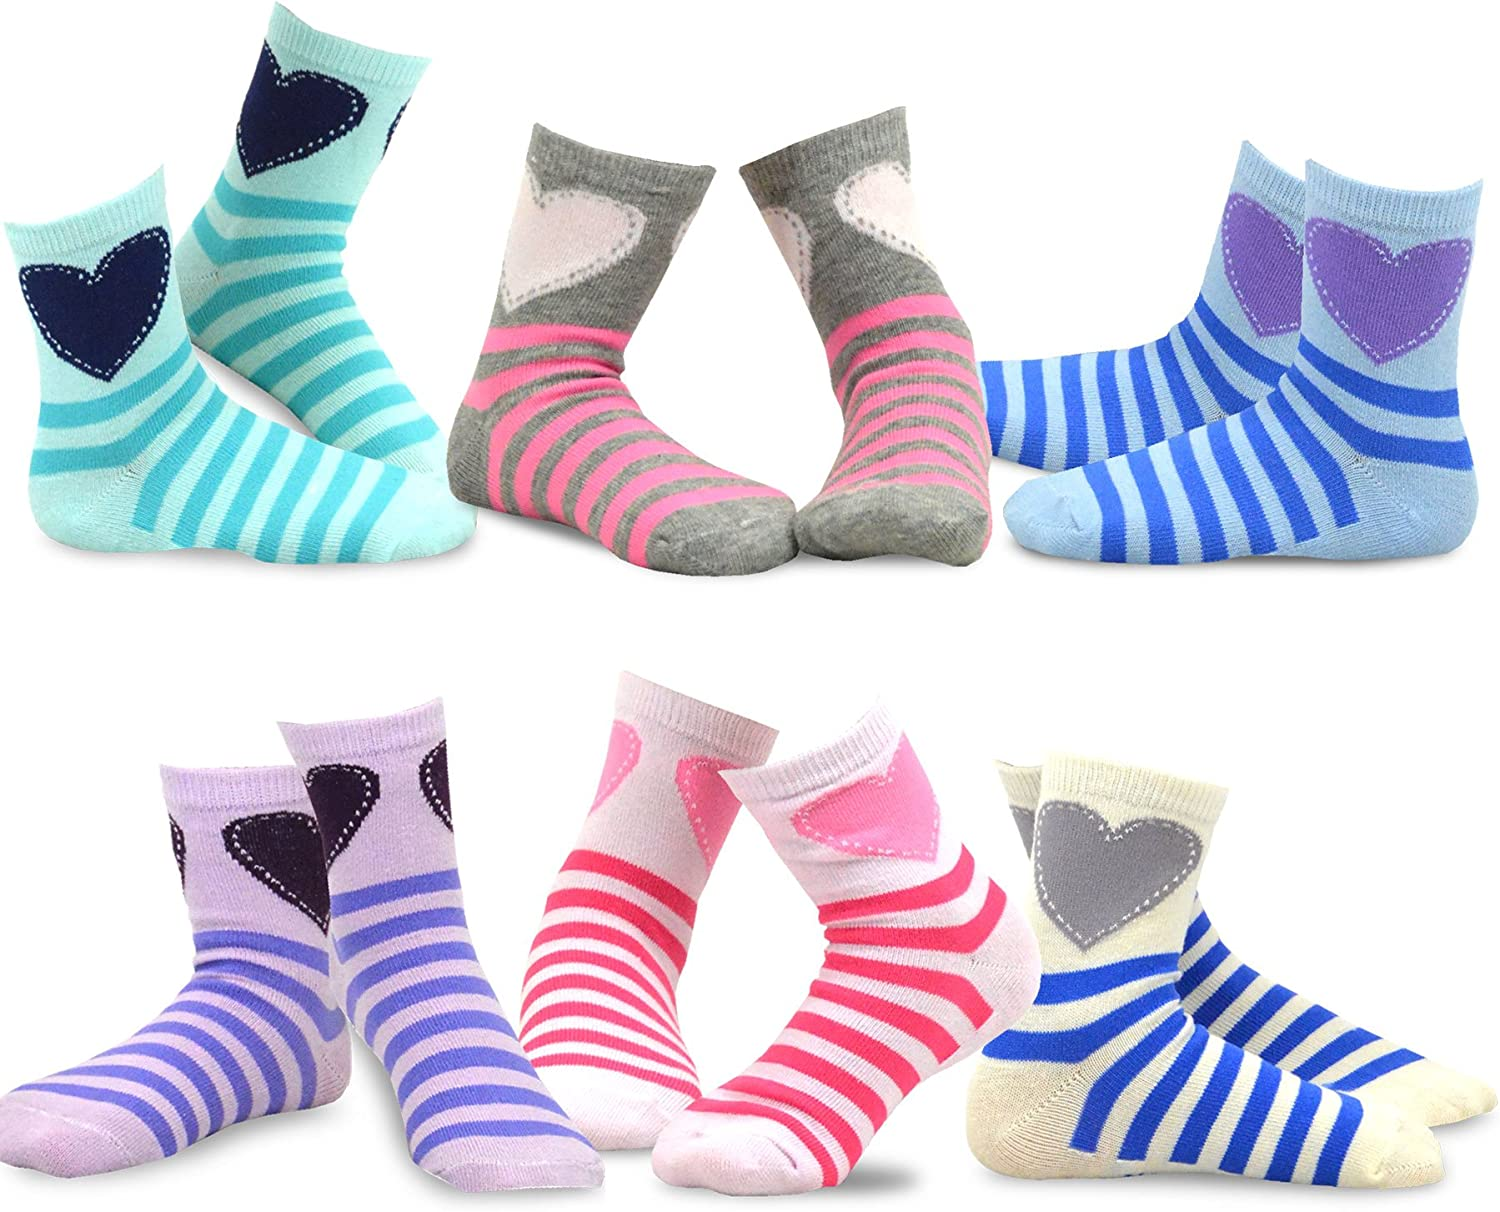 TeeHee Little Girls Stripes Fashion Cotton Short Crew 6 Pair Pack (9-10 Years, Stripes and Heart)